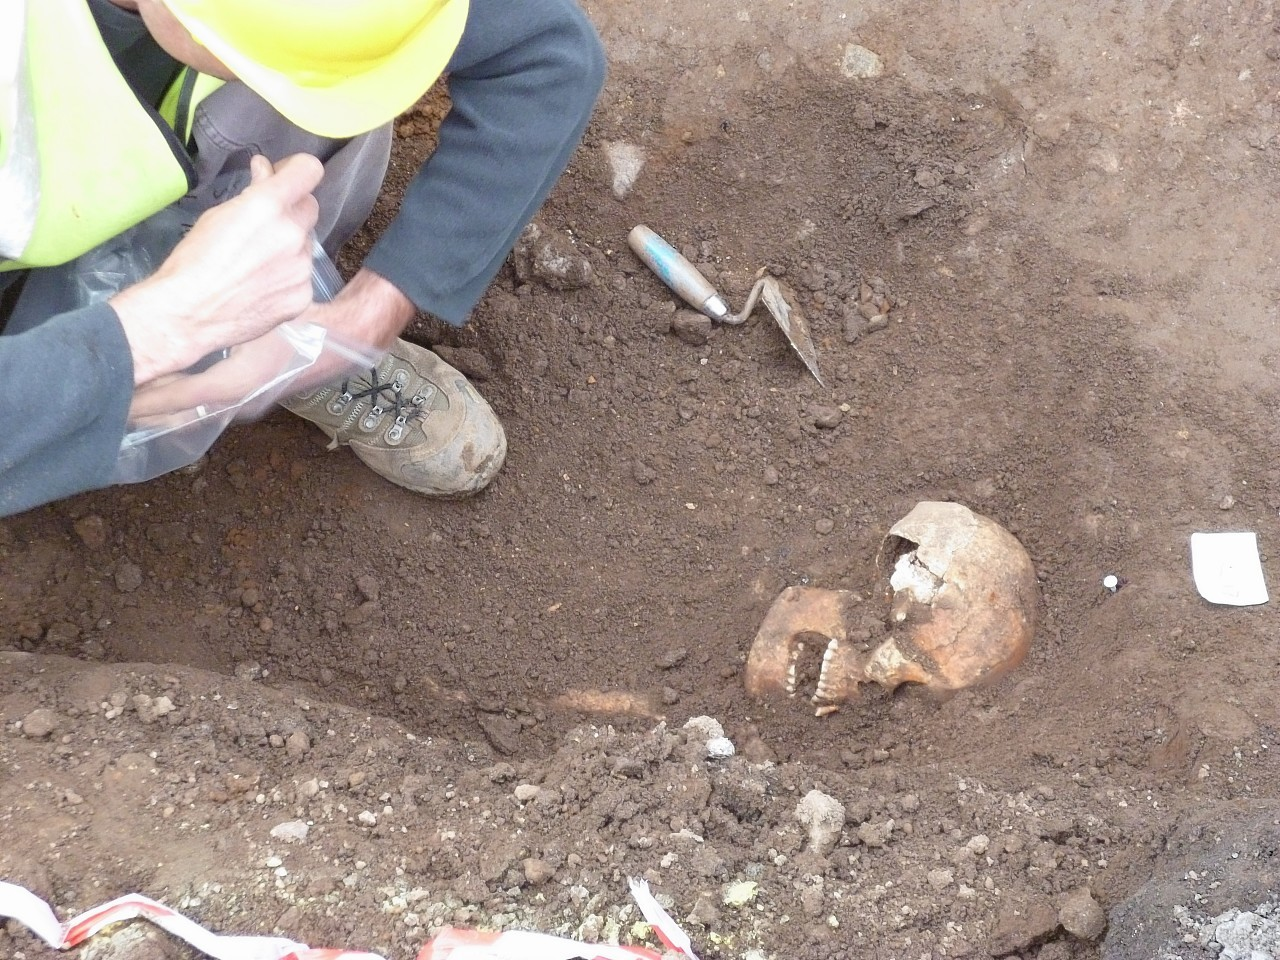 Workmen uncovered the remains